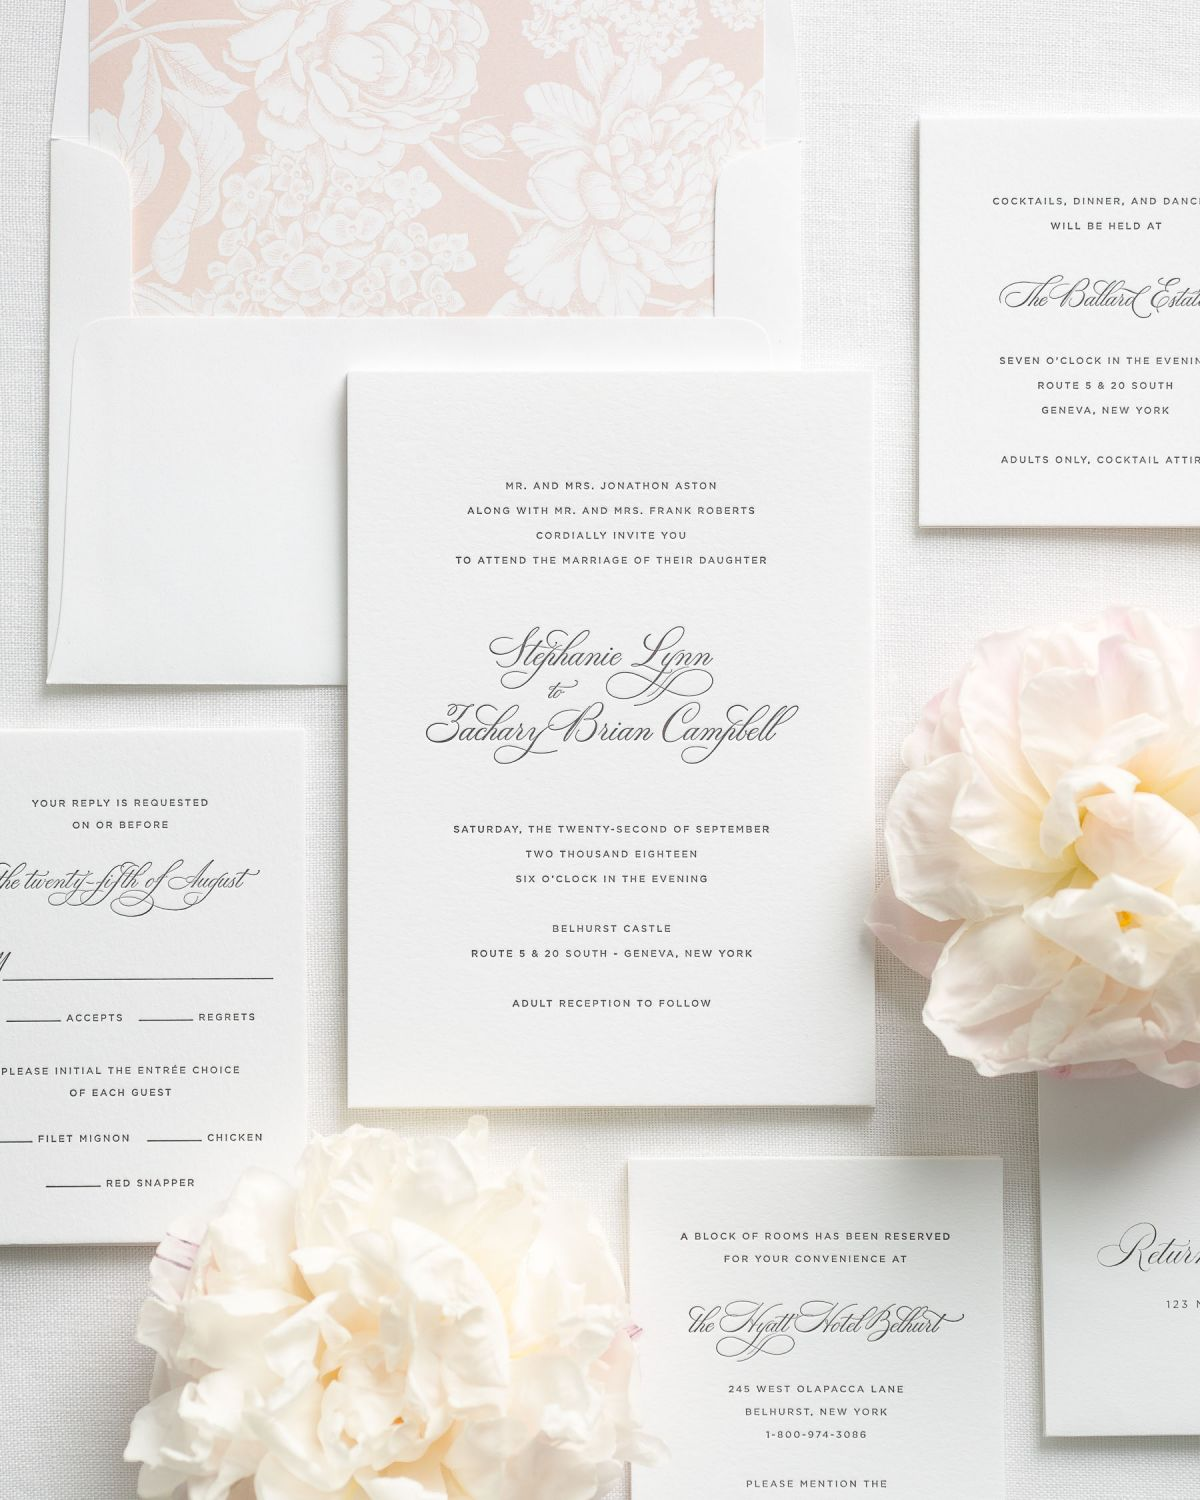 Delicate Elegance letterpress stationery suite